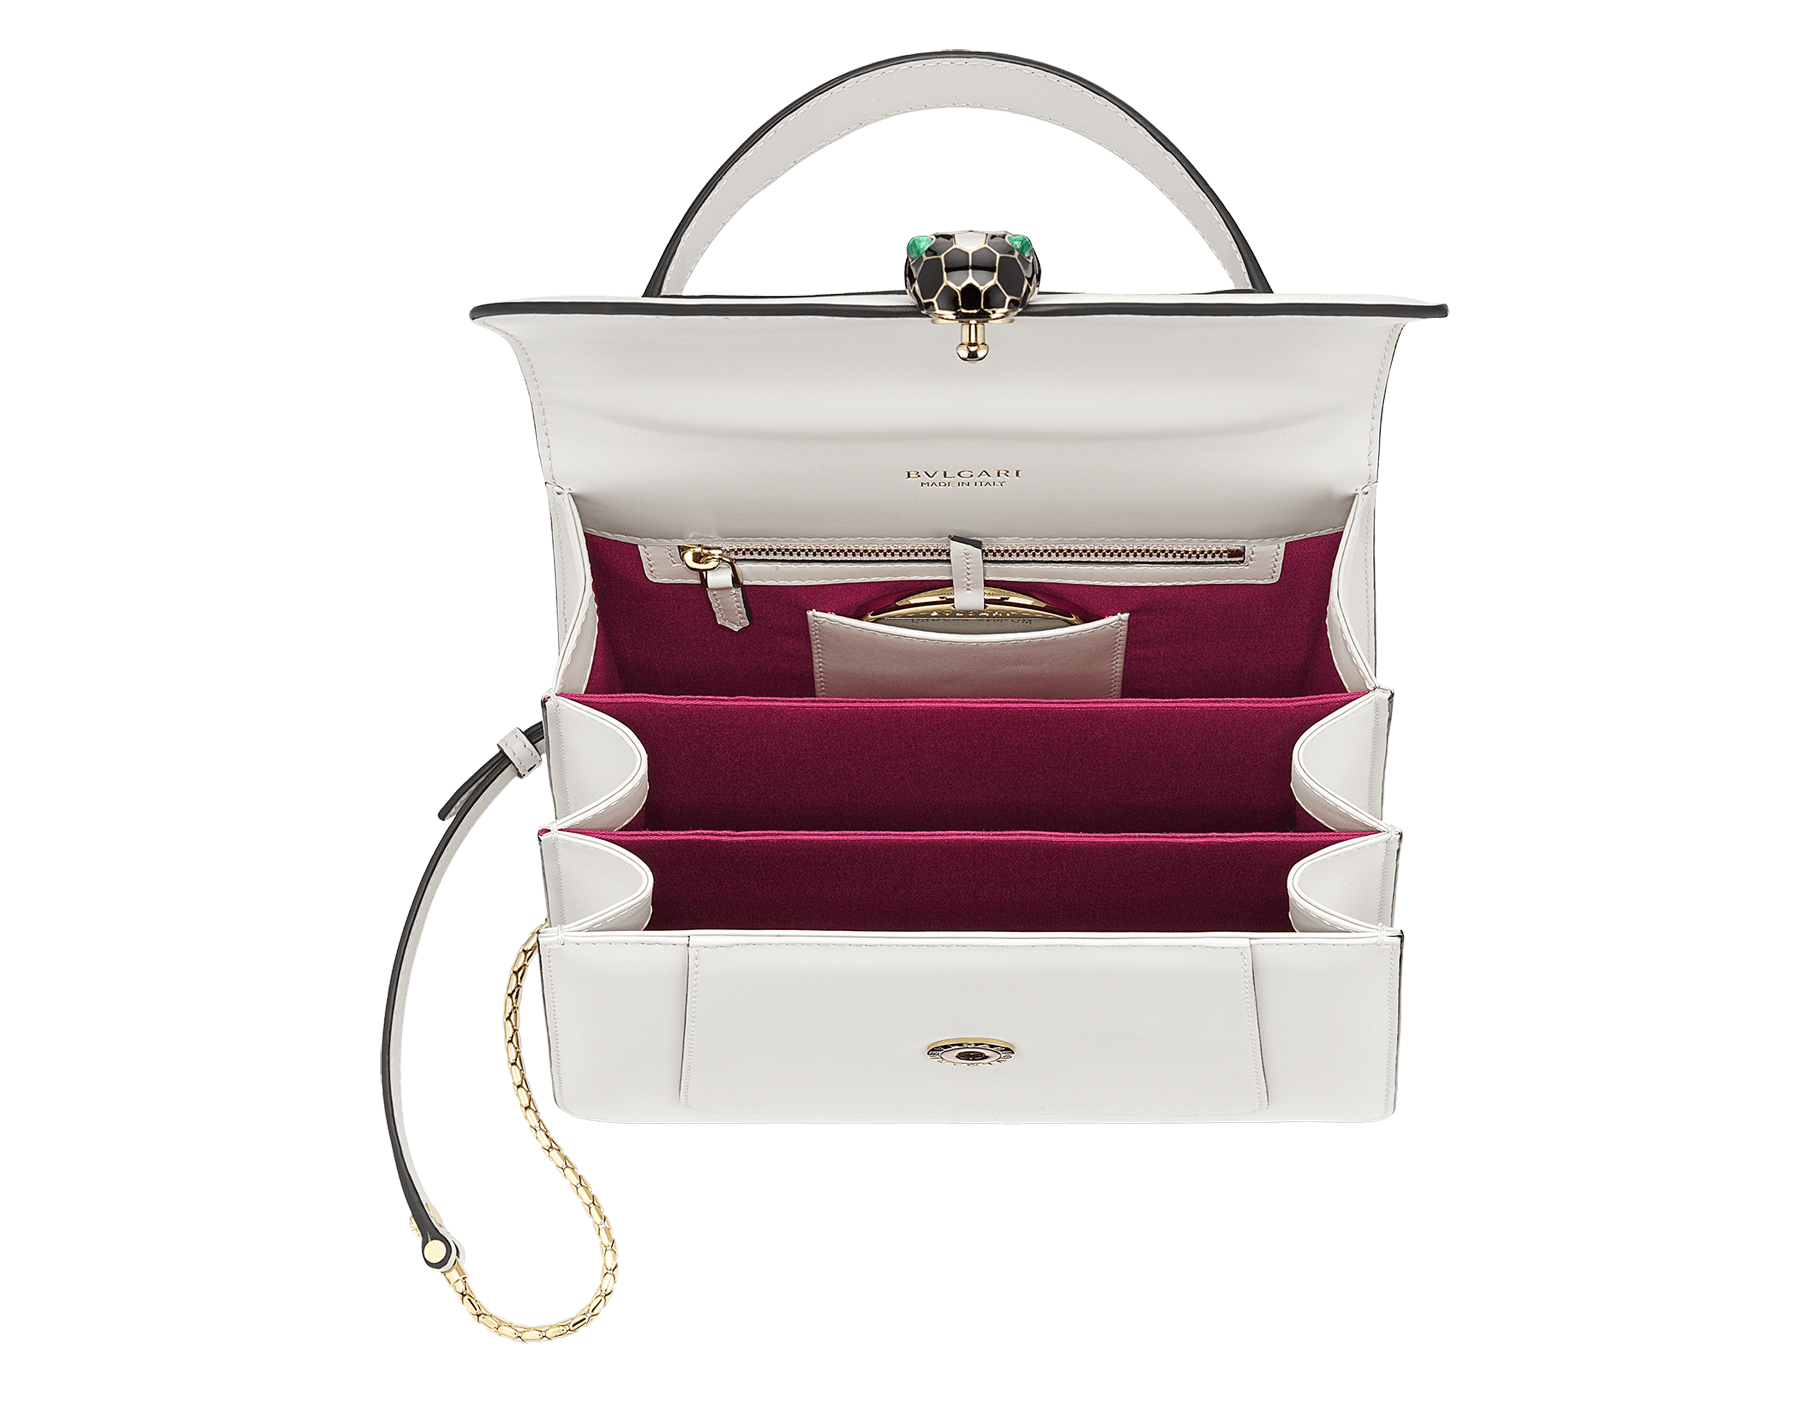 """Serpenti Forever"" top handle bag in daisy topaz calf leather. Iconic snake head closure in light gold plated brass enriched with black and white enamel and green malachite eyes. 1050-CL image 6"